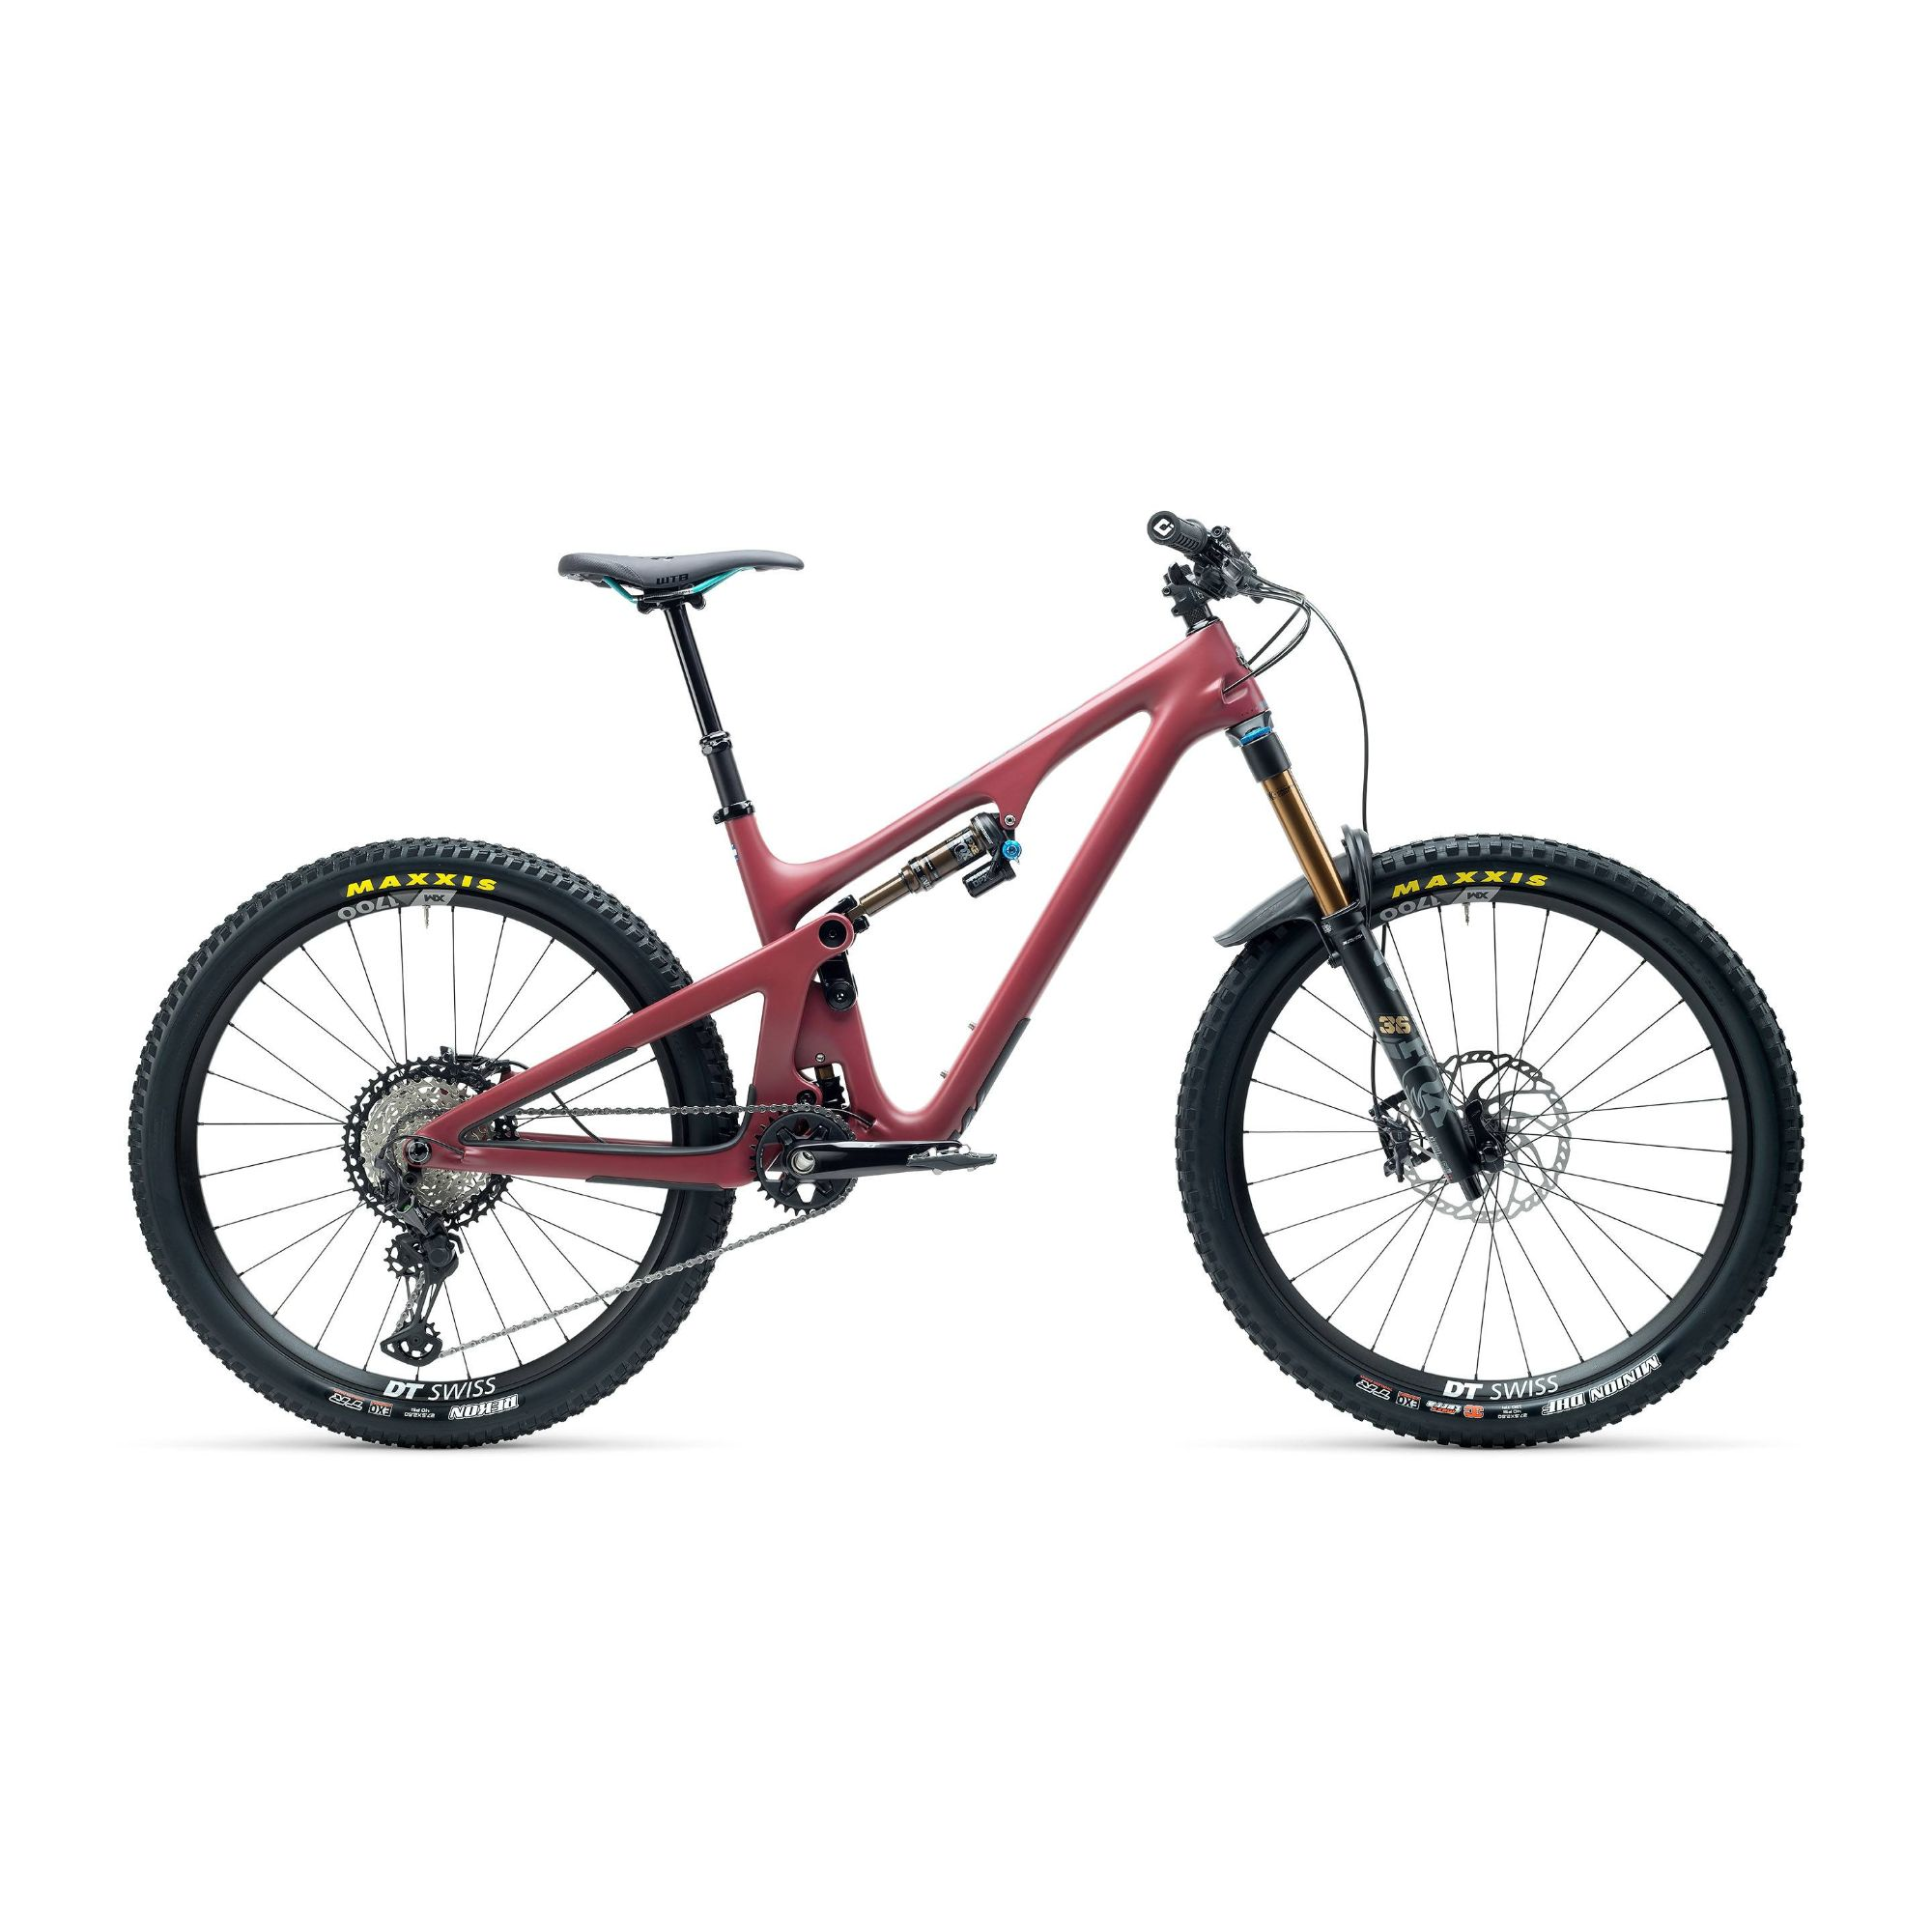 Yeti SB140 T Series T1 27.5 Shimano XT Carbon Mountain Bike 2021 Ron